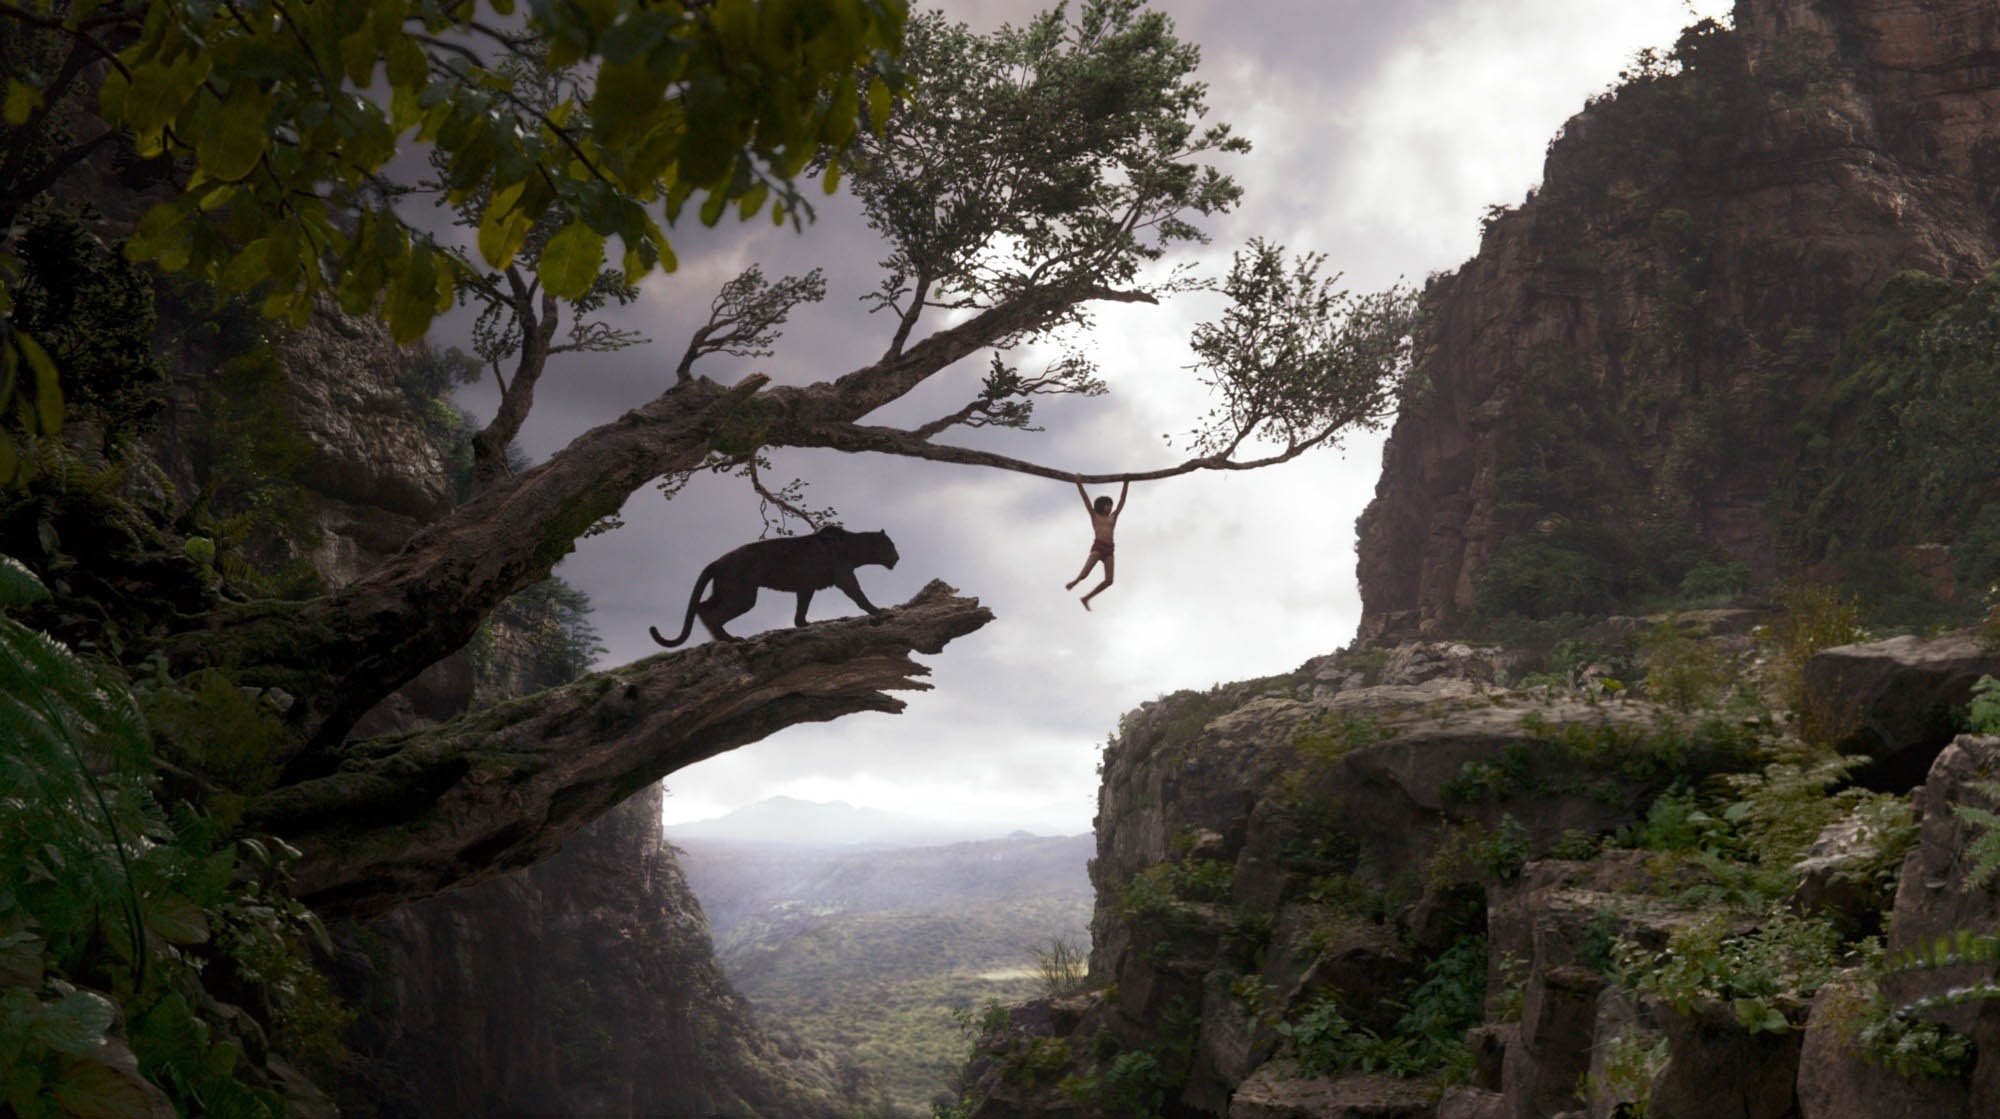 Movie Review: The Jungle Book, Kisah Manusia dan Kehidupan Hutan